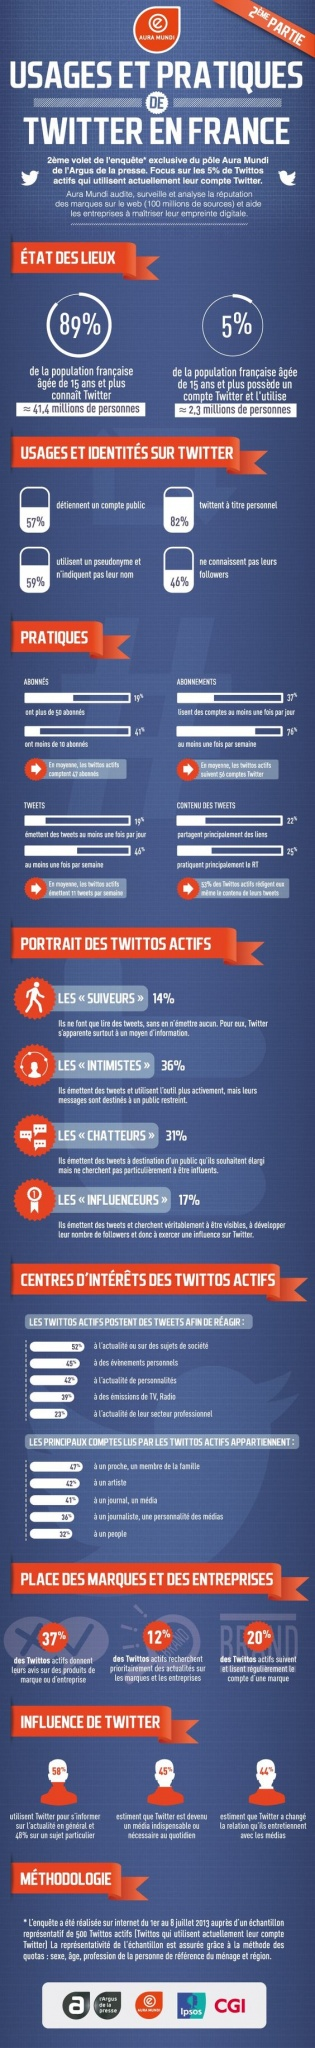 twitter-france-infographie